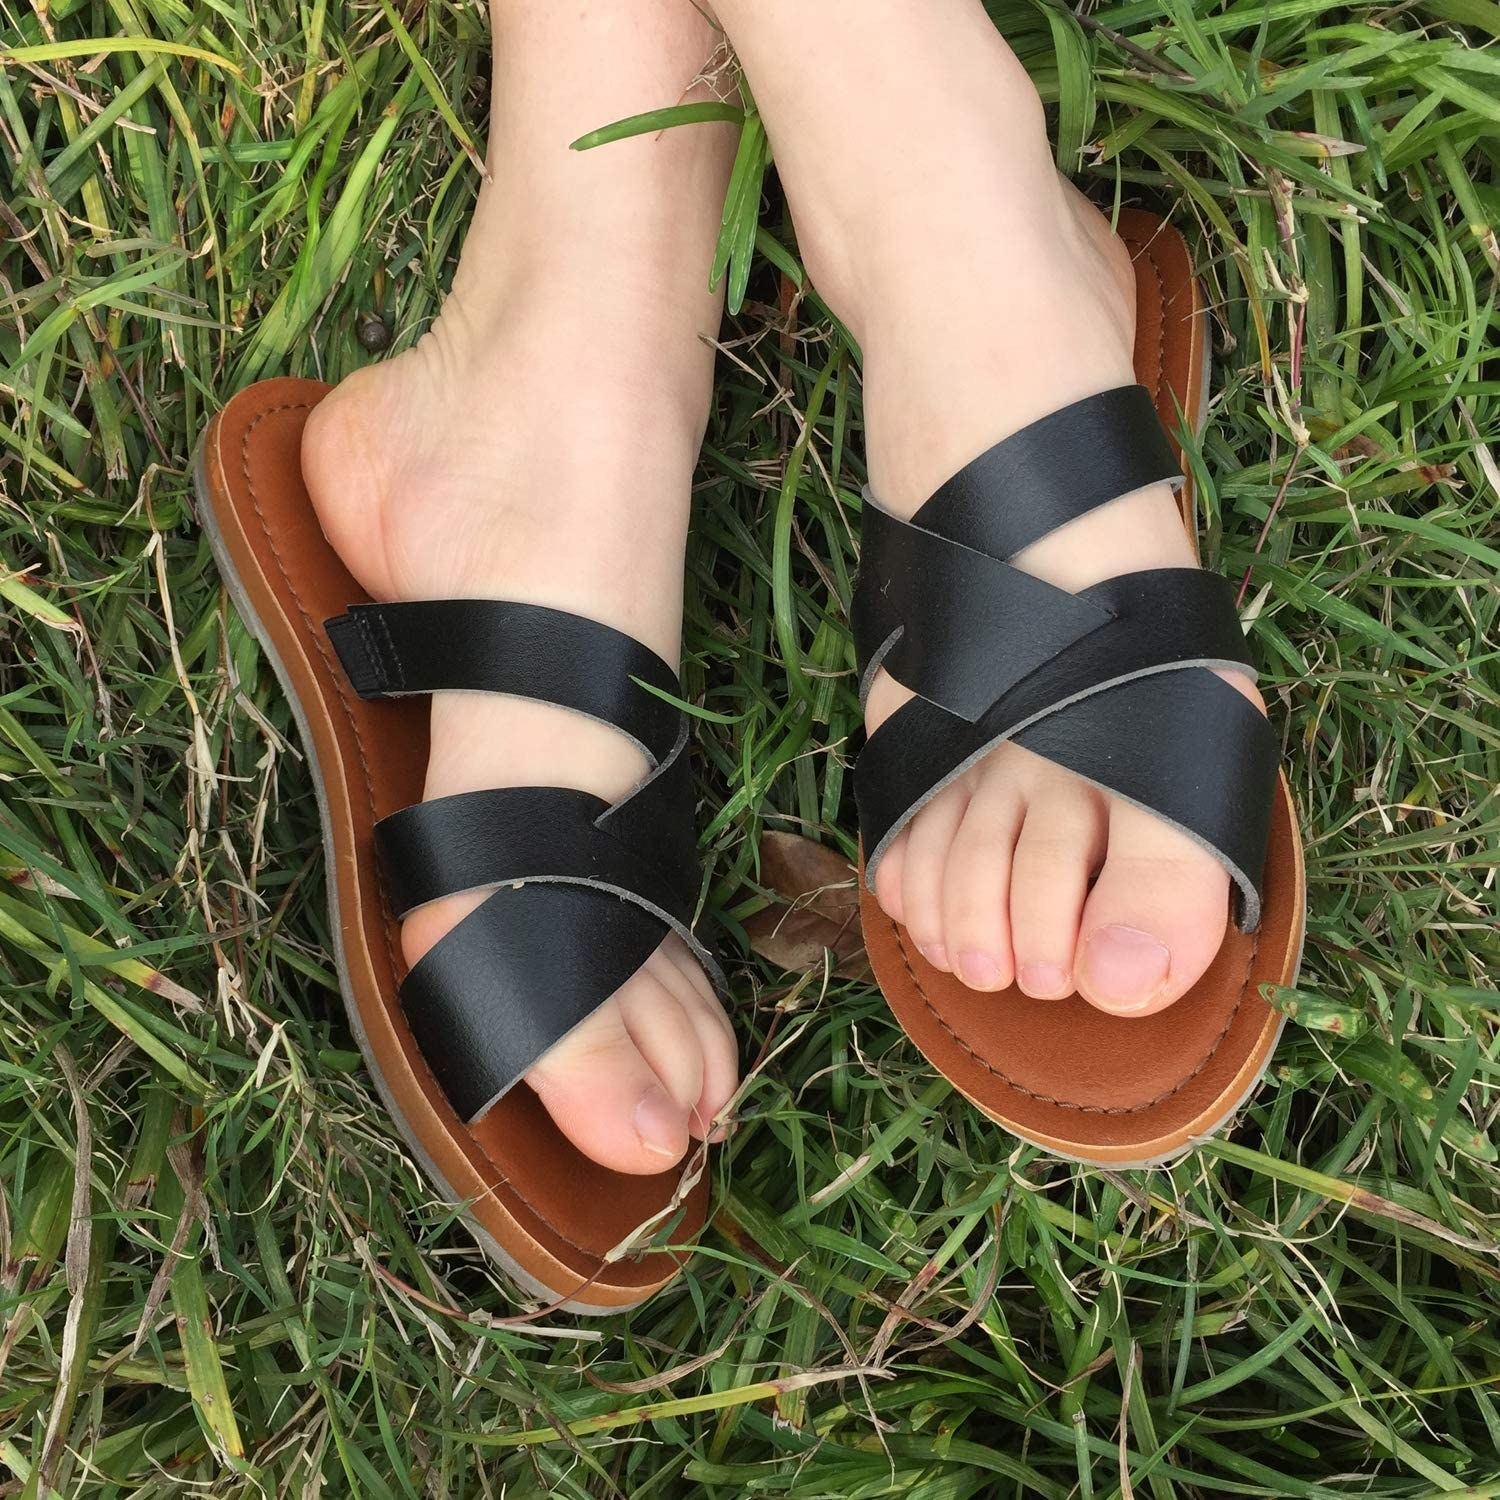 Model wearing the sandals with brown soles and black crossed straps across the top